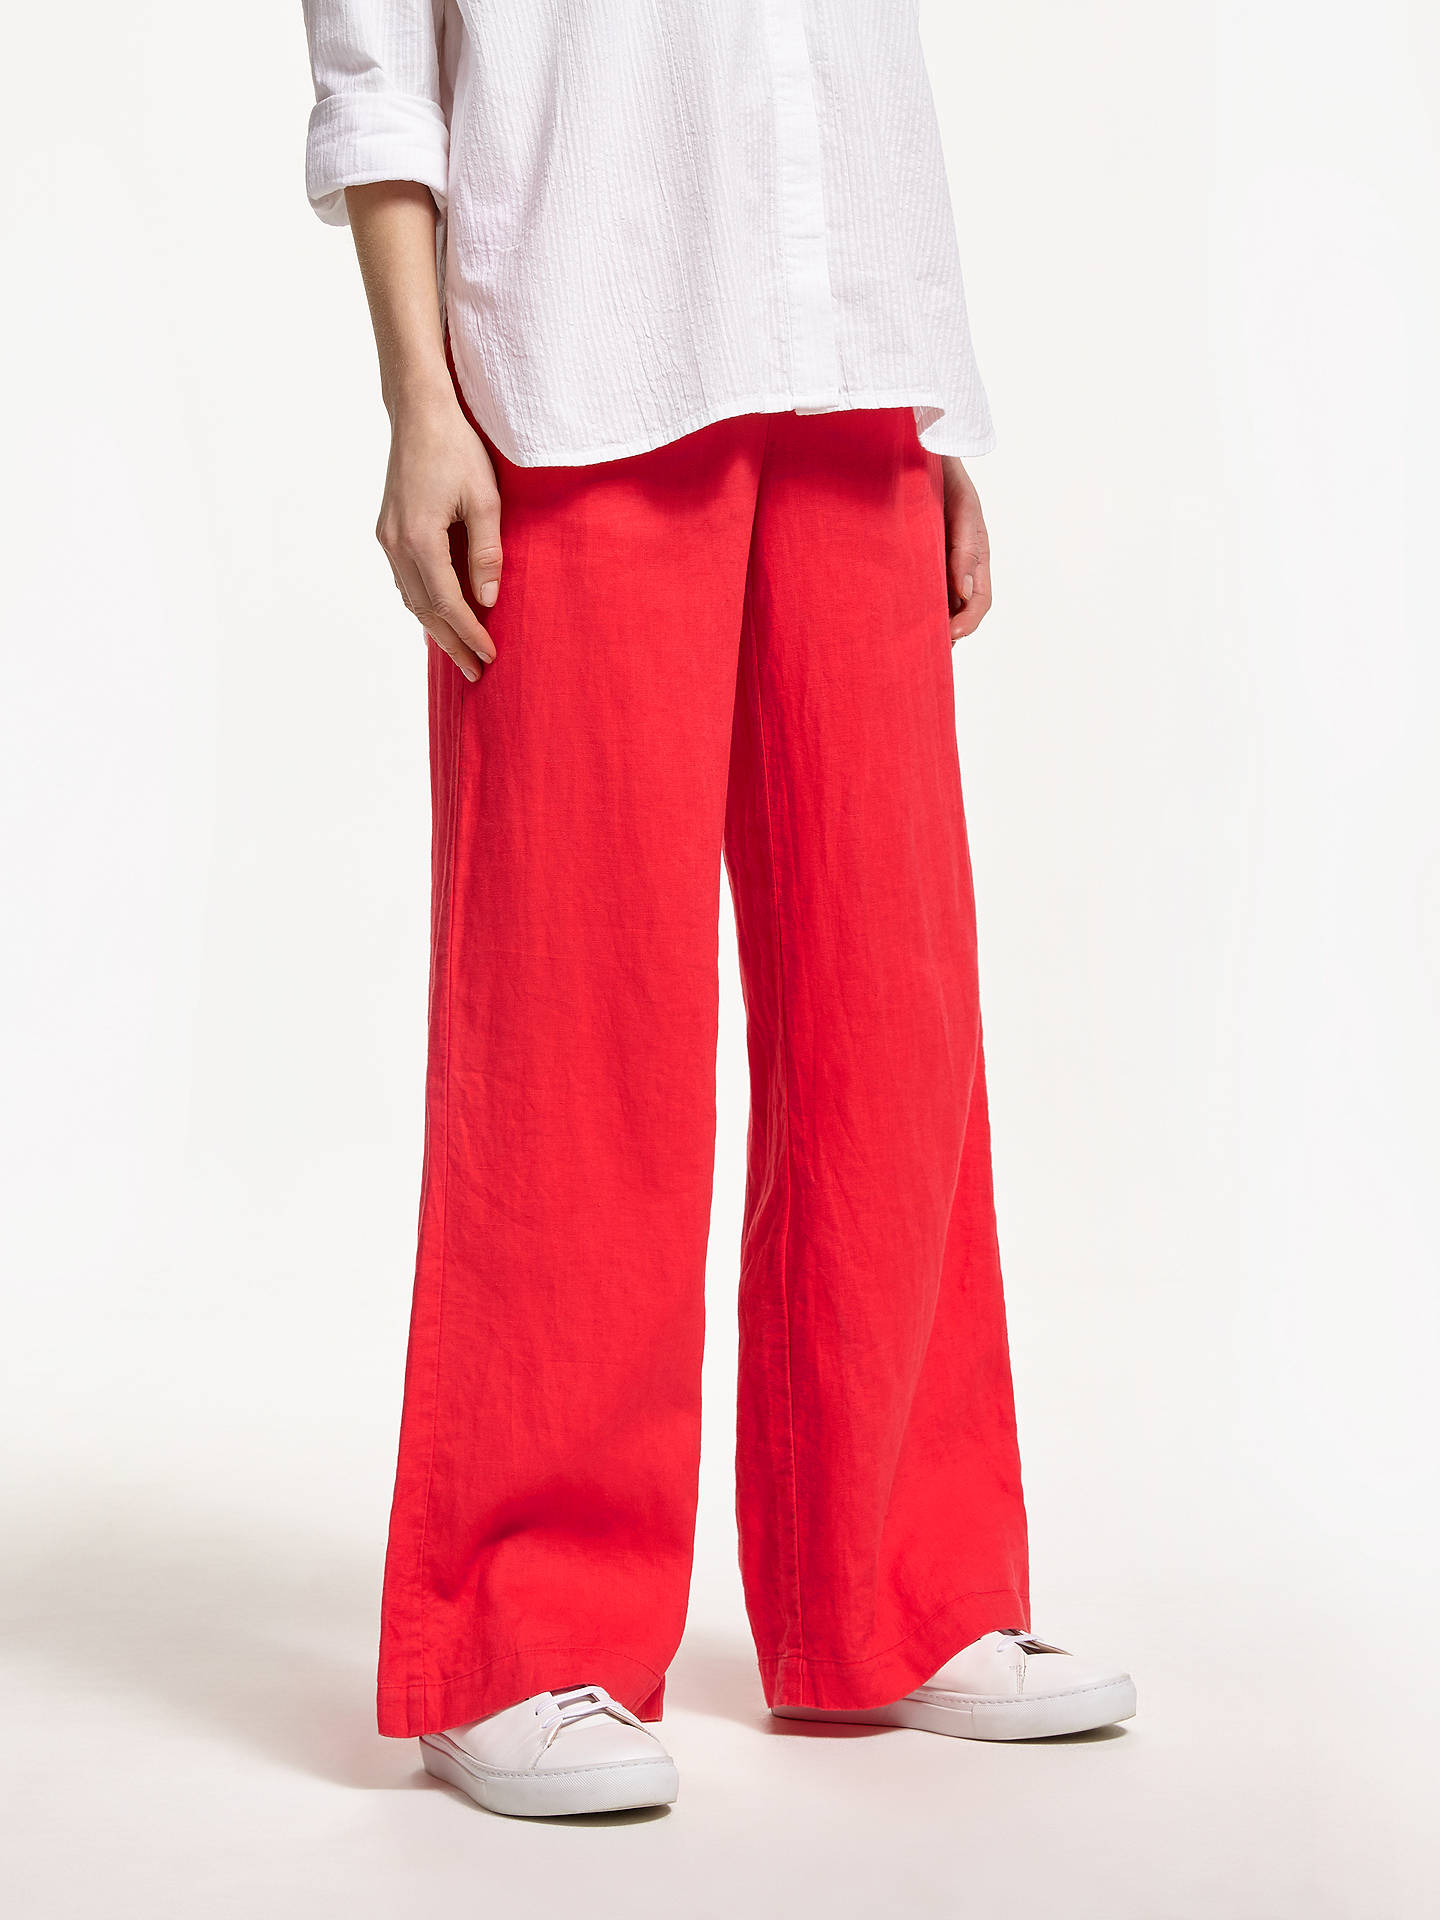 Buy John Lewis & Partners Linen Wide Leg Trousers, Bittersweet Red, 8 Online at johnlewis.com